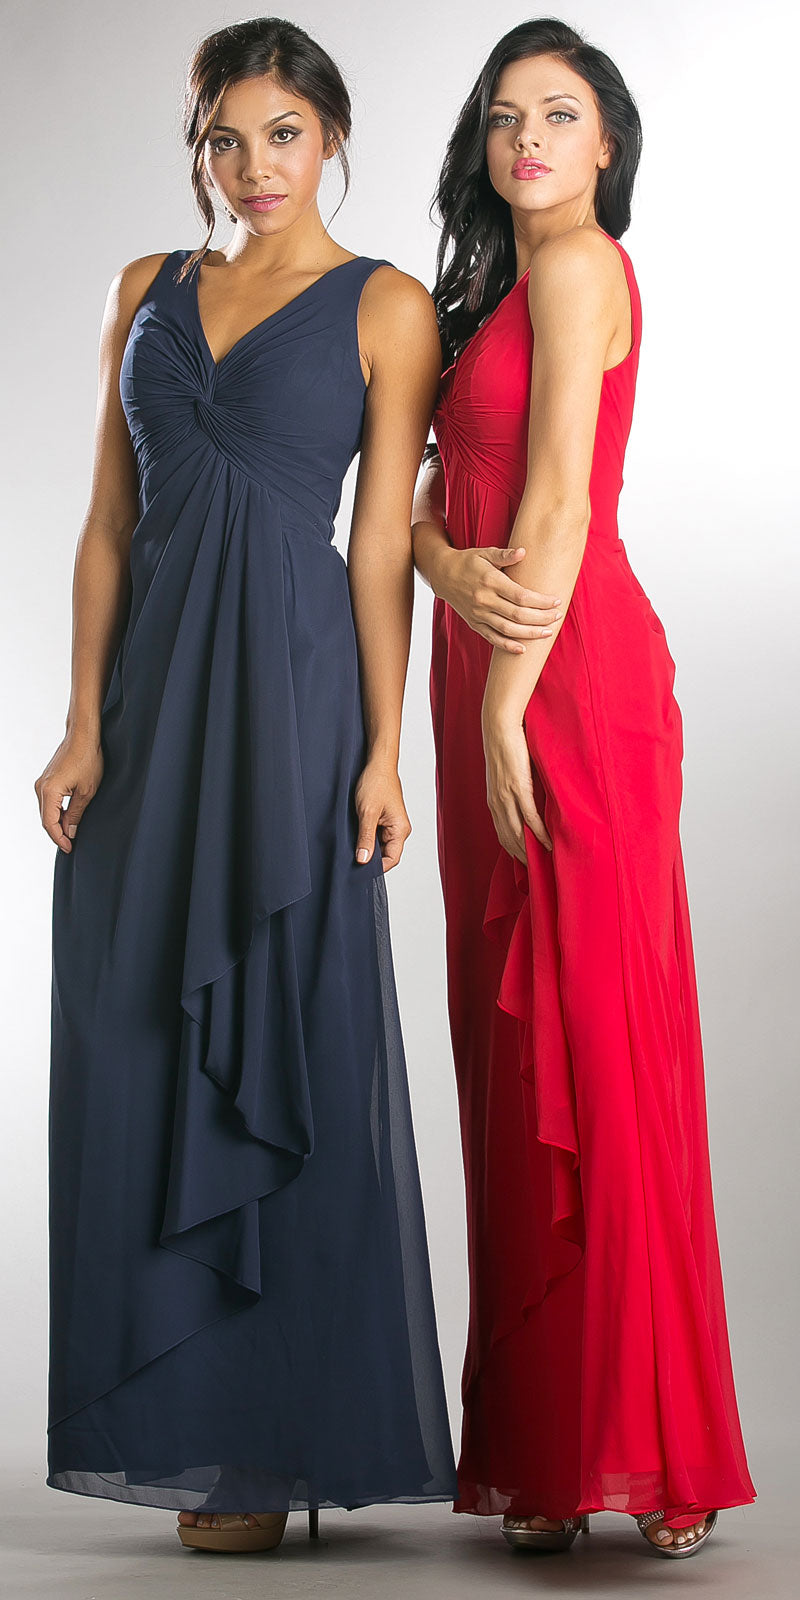 Image of V-neck Ruched Twist Knot Bust Long Bridesmaid Dress in an alternate image